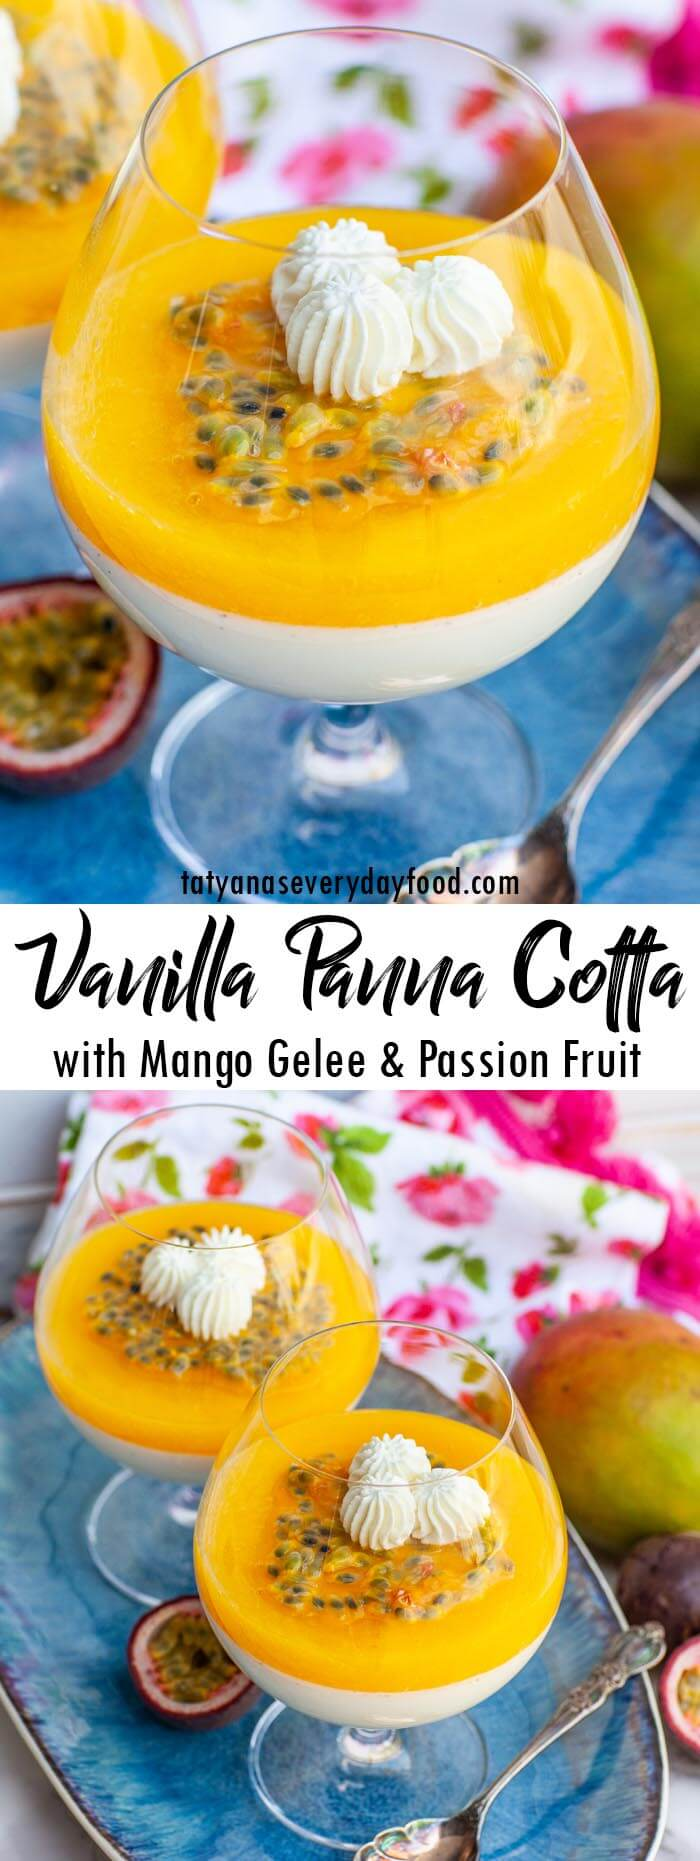 Vanilla Panna Cotta with Mango Gelee and Passion Fruit video recipe